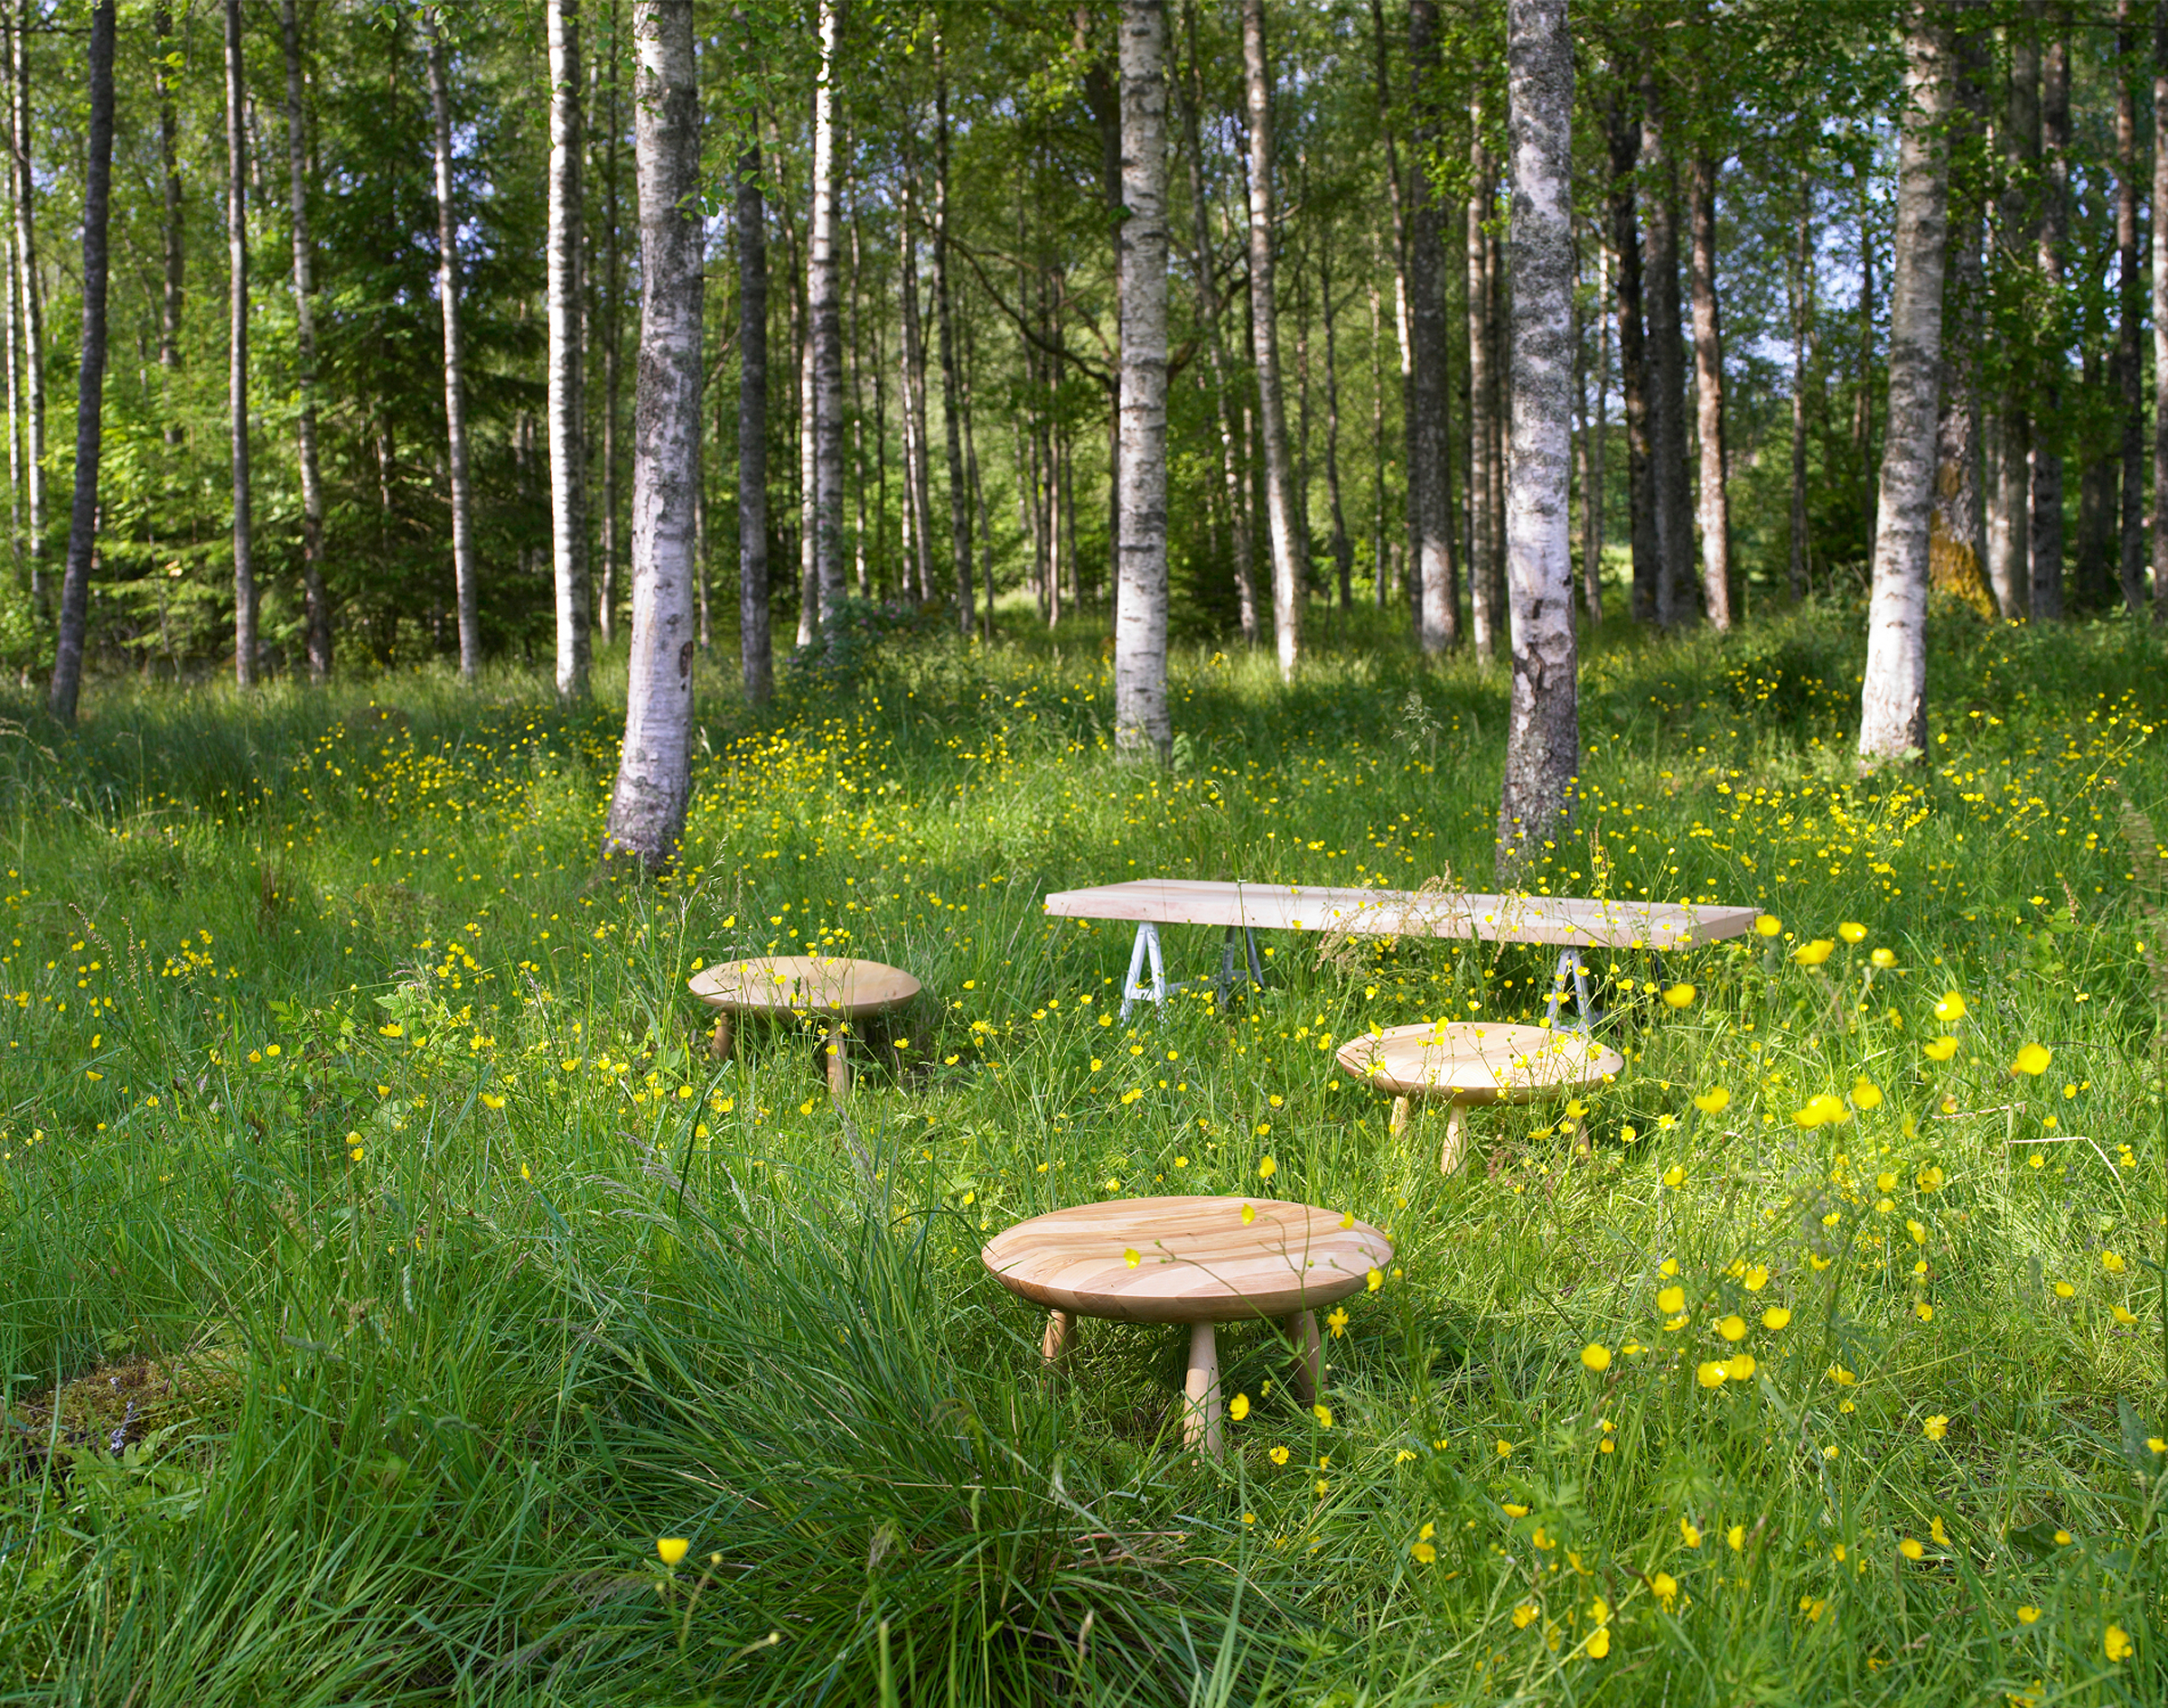 Photo of wooden tables and a wooden bench on the grass in a lush green forest clearing.